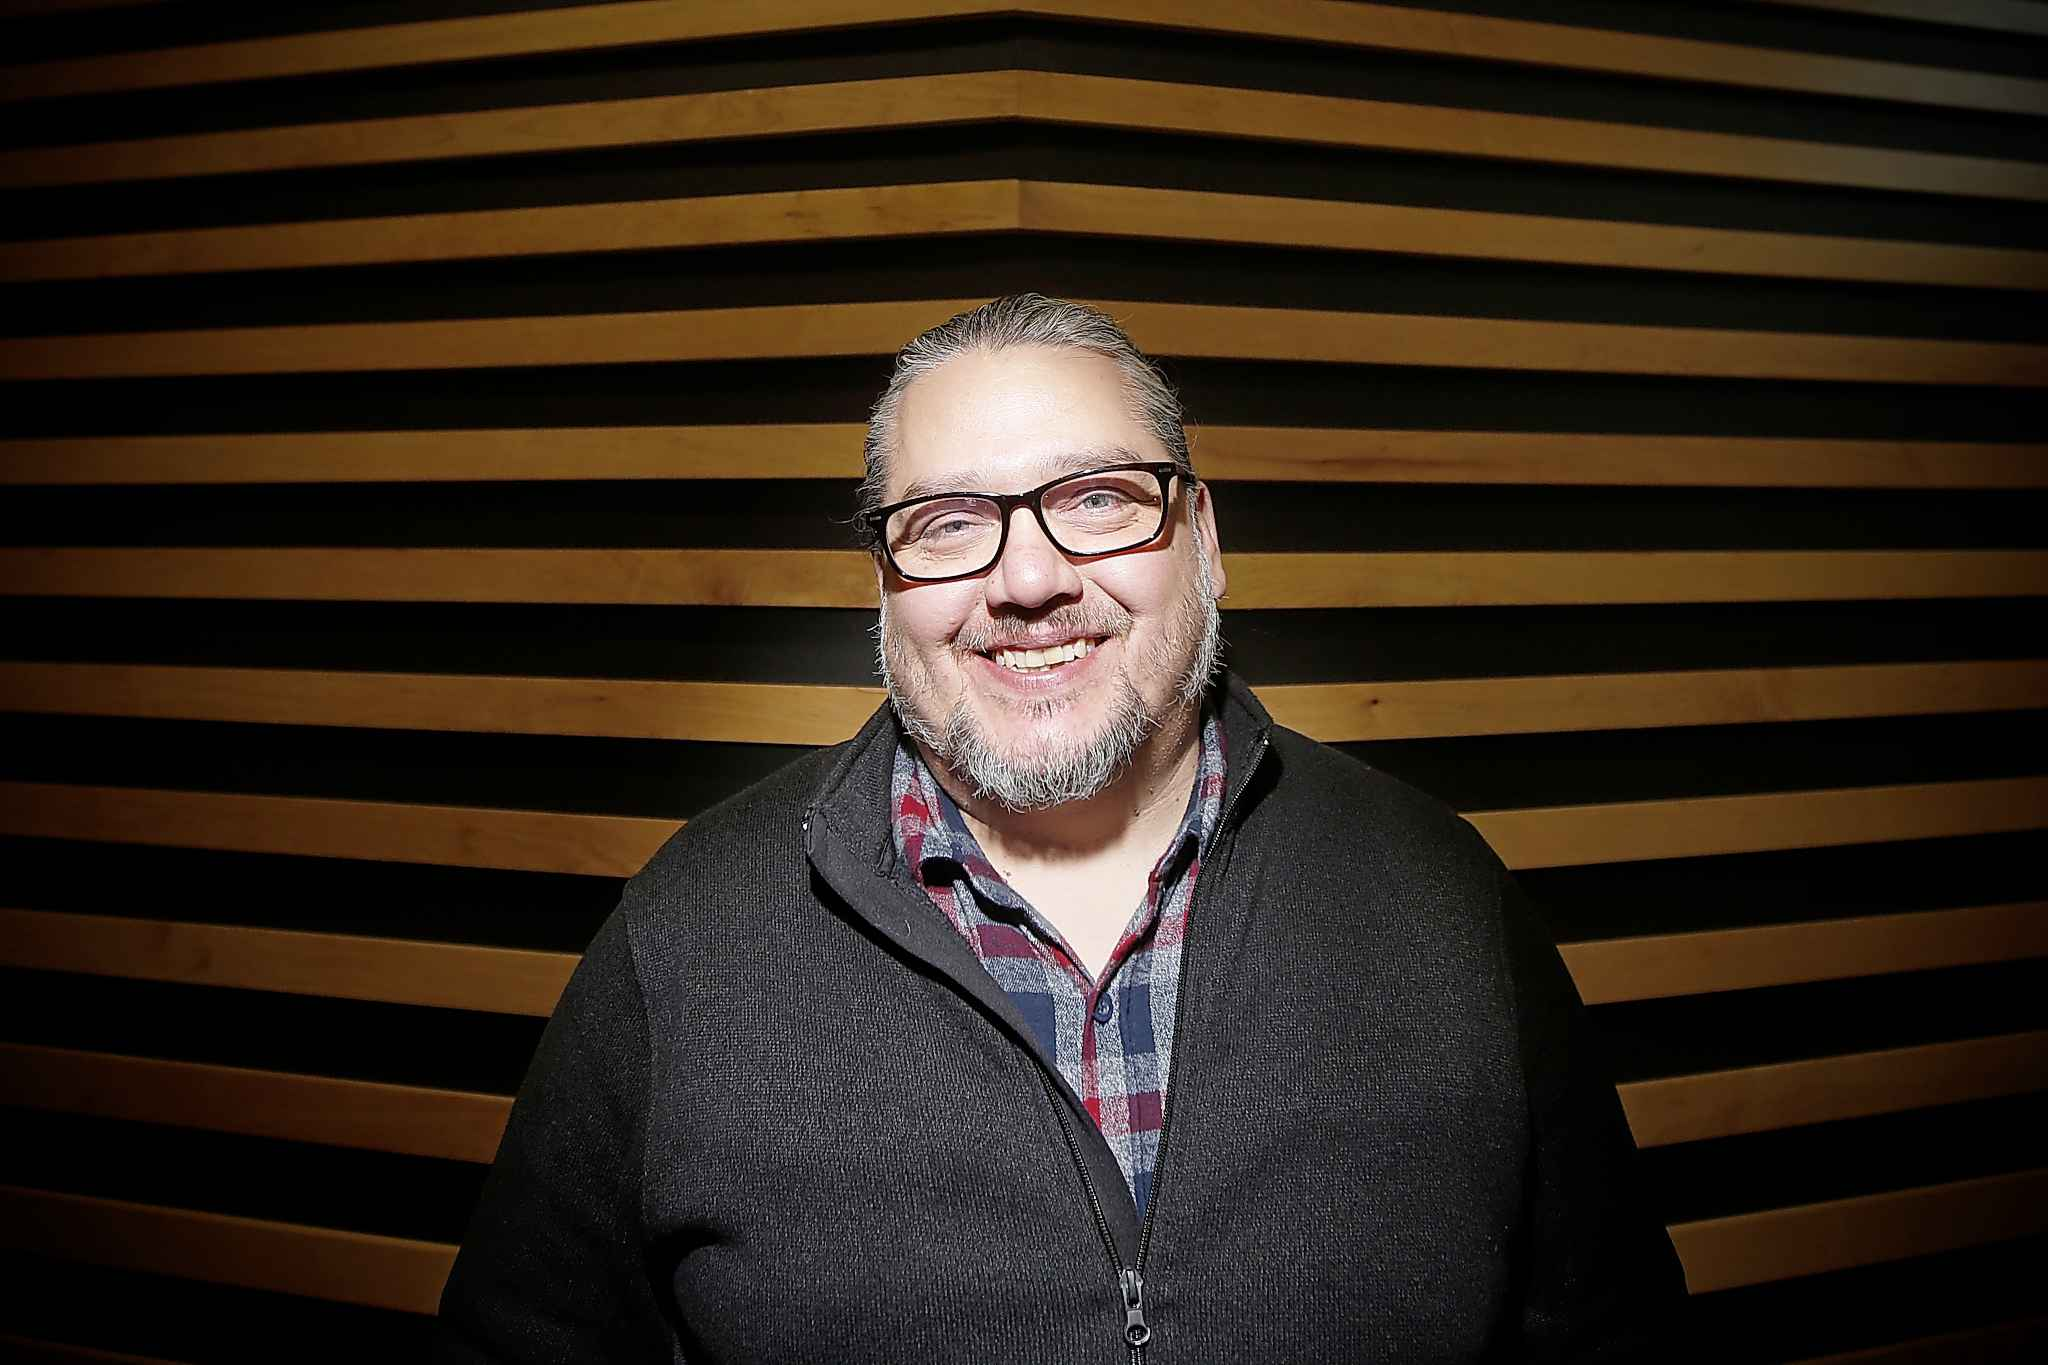 Tim Fontaine, founder of Walking Eagle News, is hosting a live event at the West End Cultural Centre on Nov. 29. (John Woods / Winnipeg Free Press)